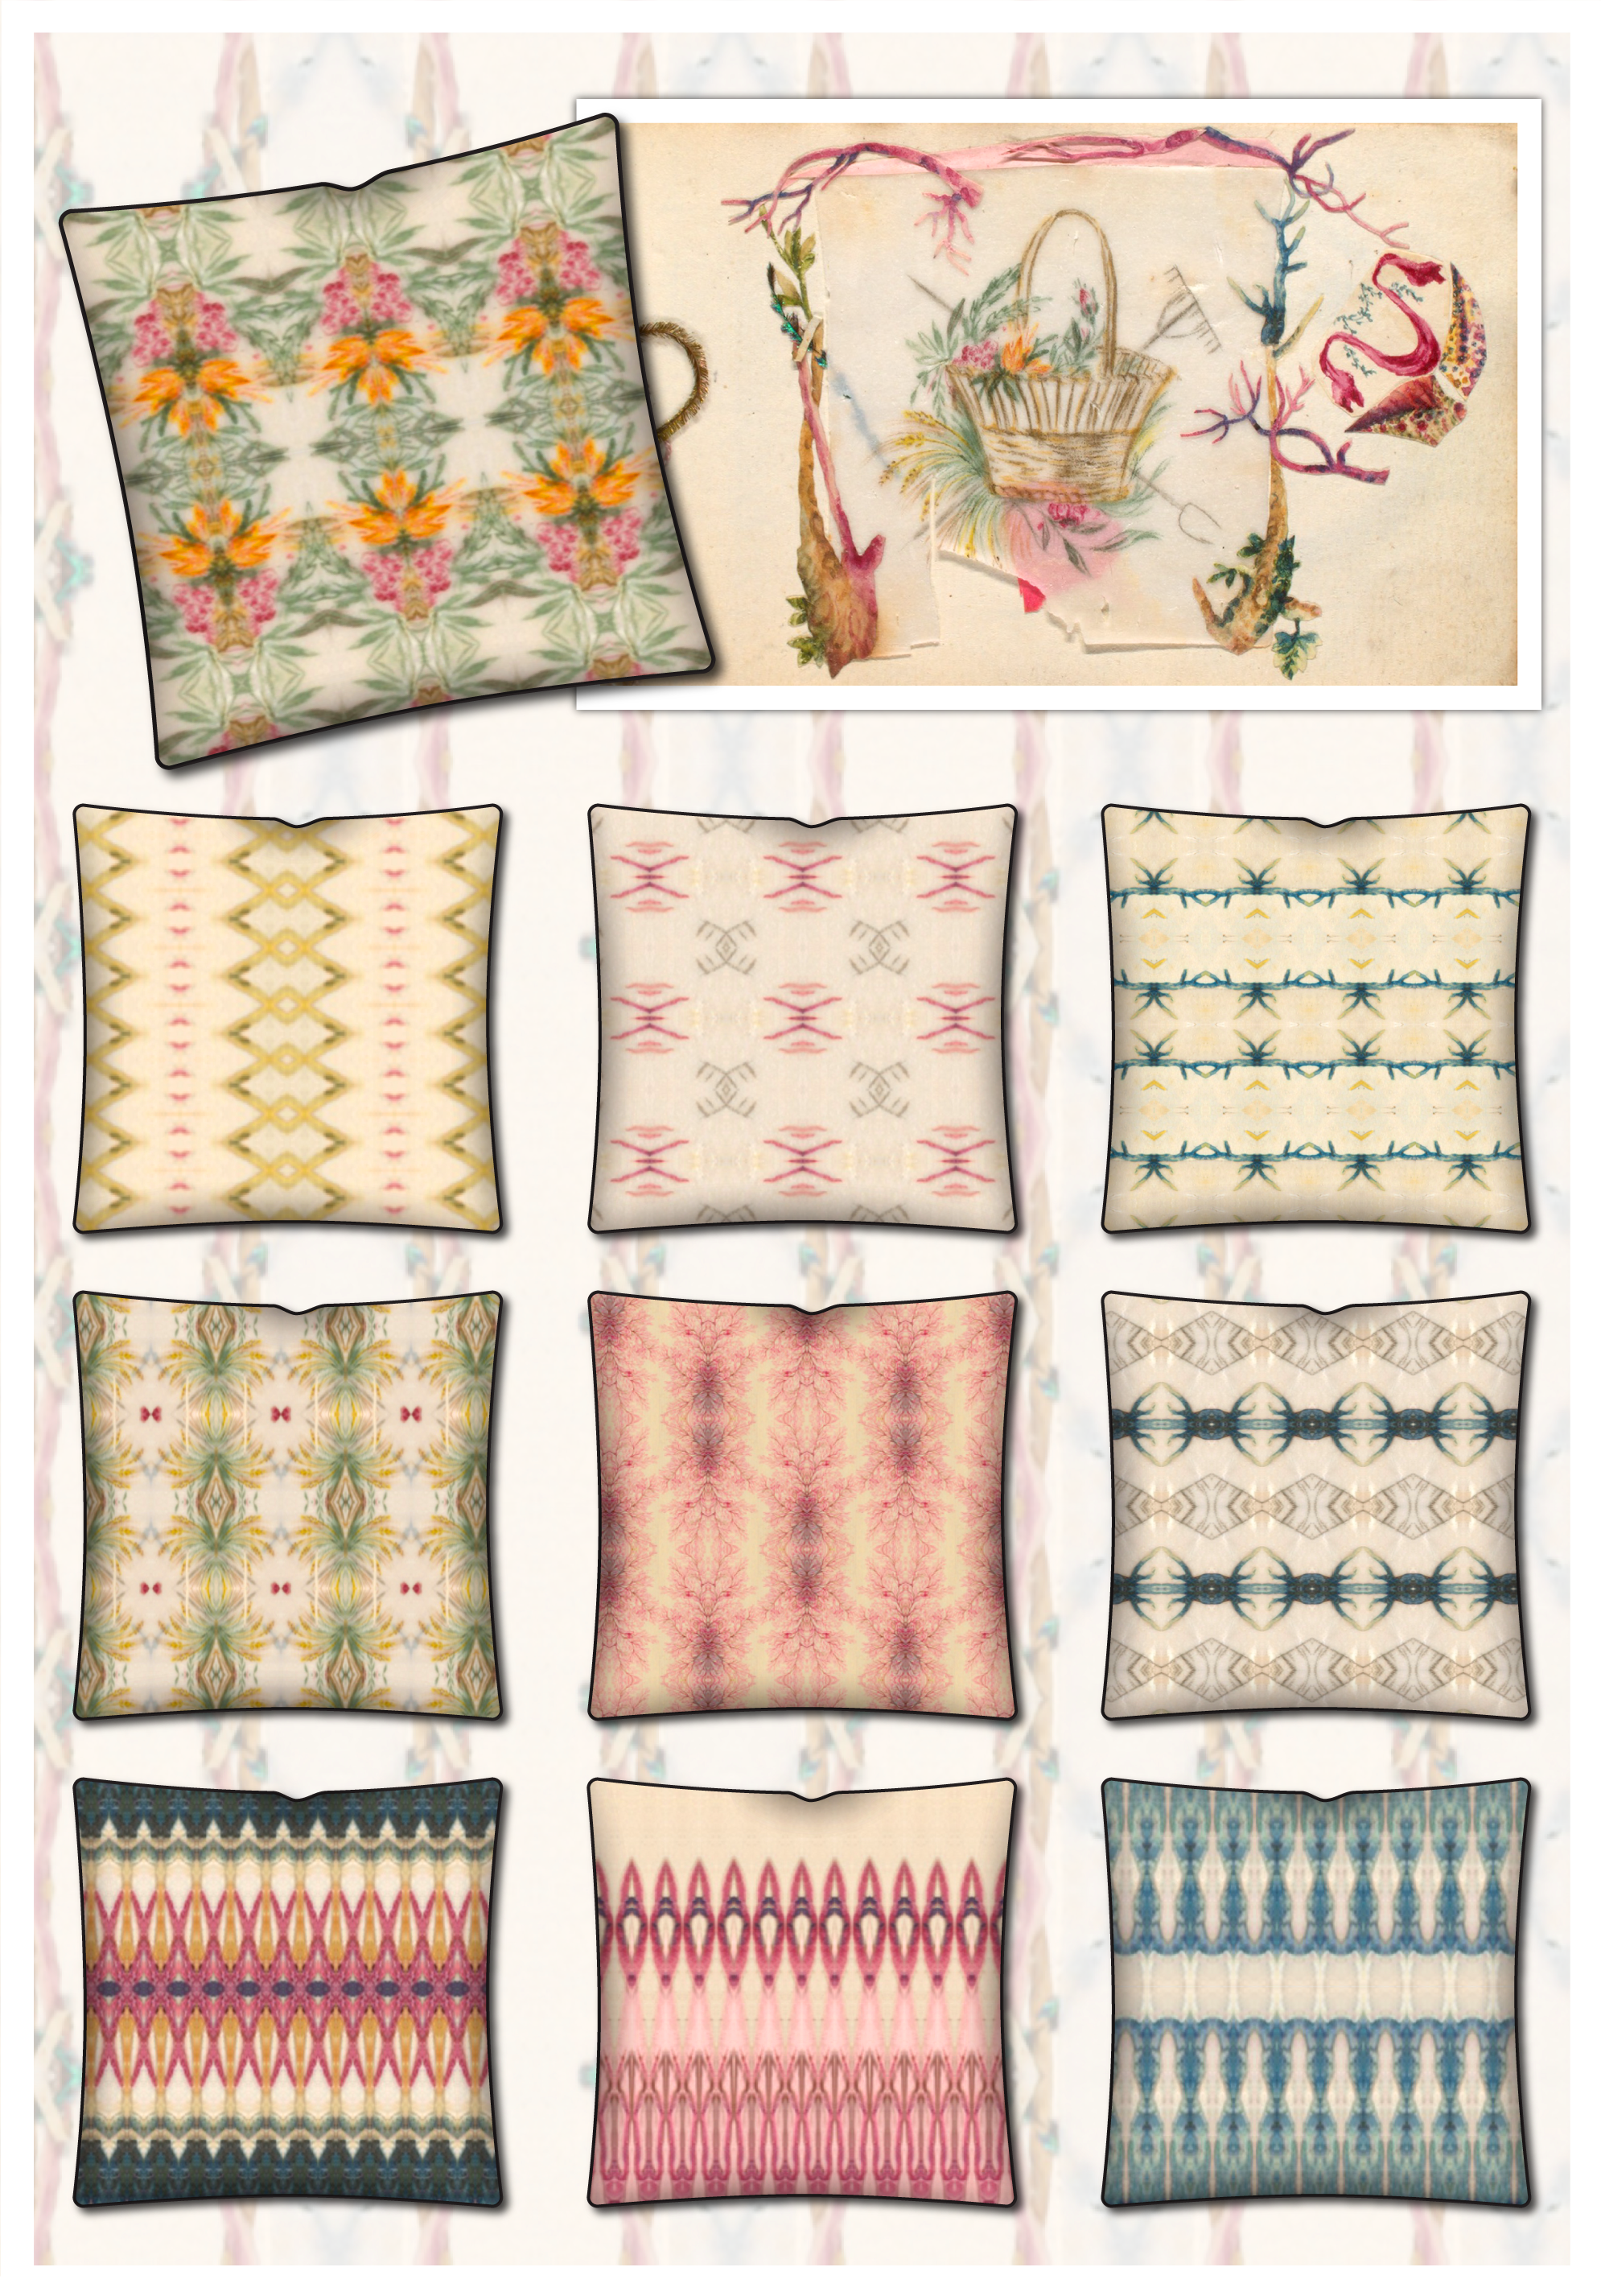 textile designs all created on the designlens iphone app u using